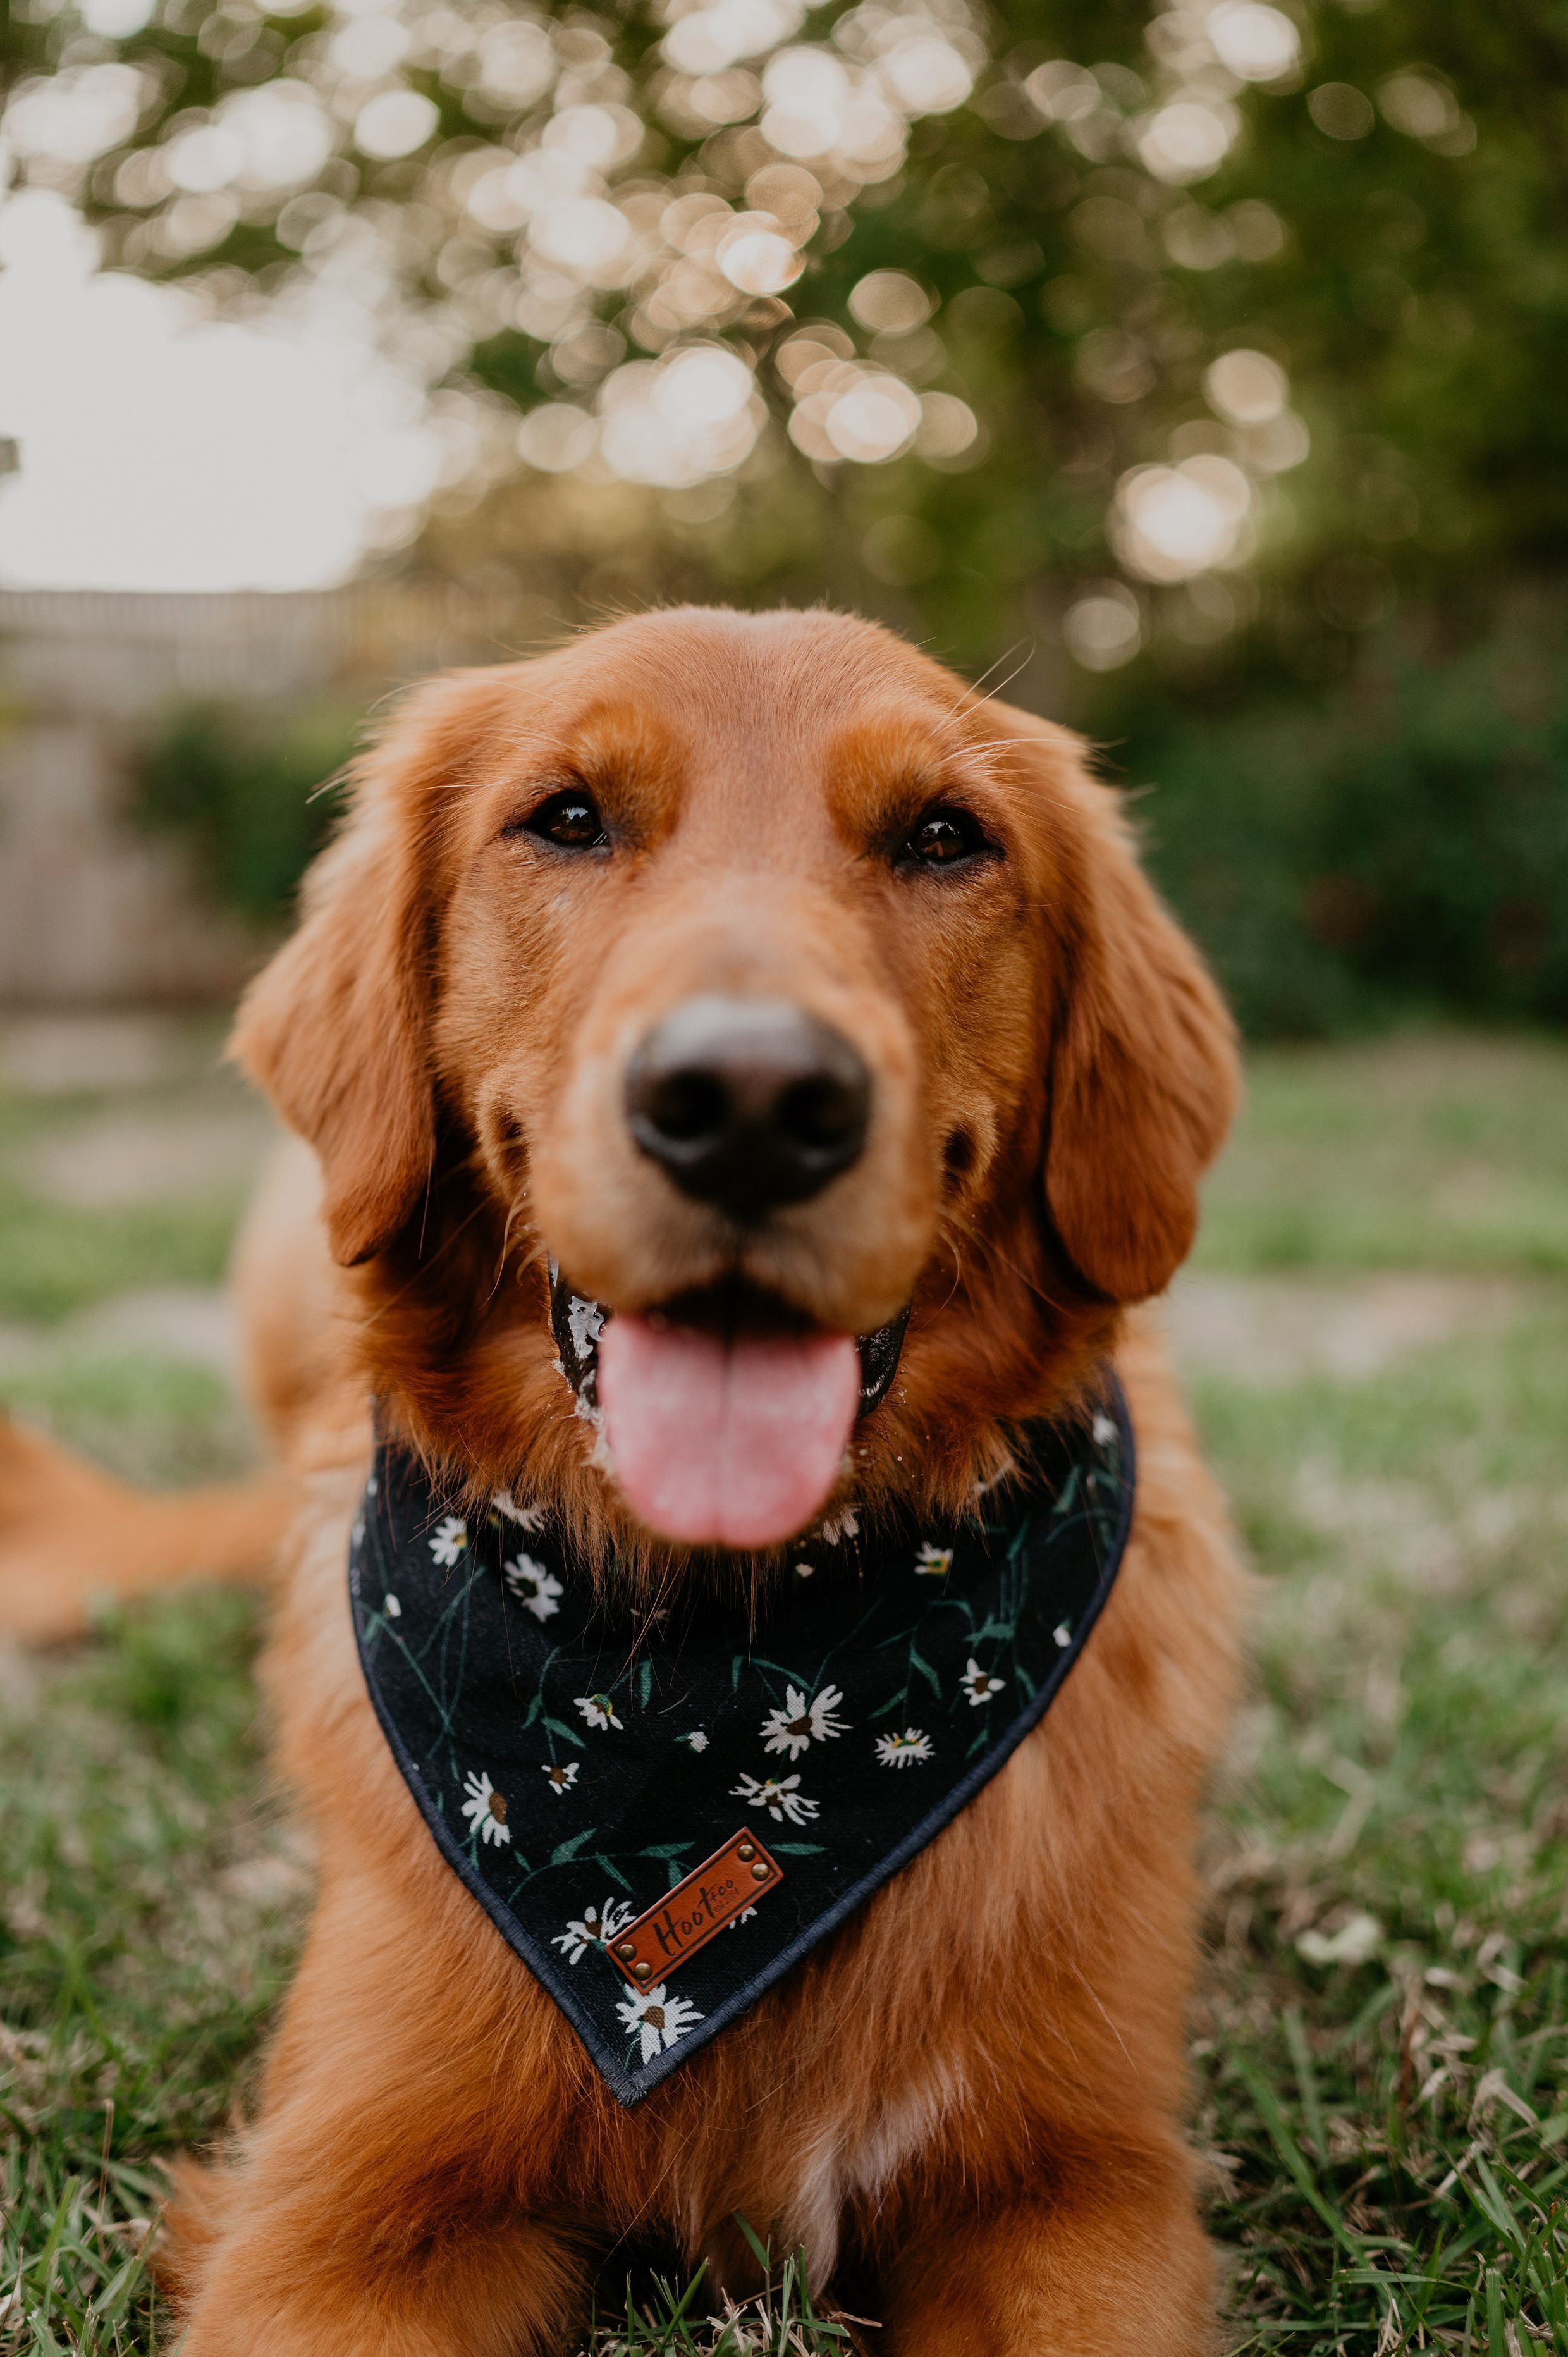 Thegoldenfinn Golden Retriever In 2020 Golden Retriever Adventure Golden Retriever Training Golden Retriever